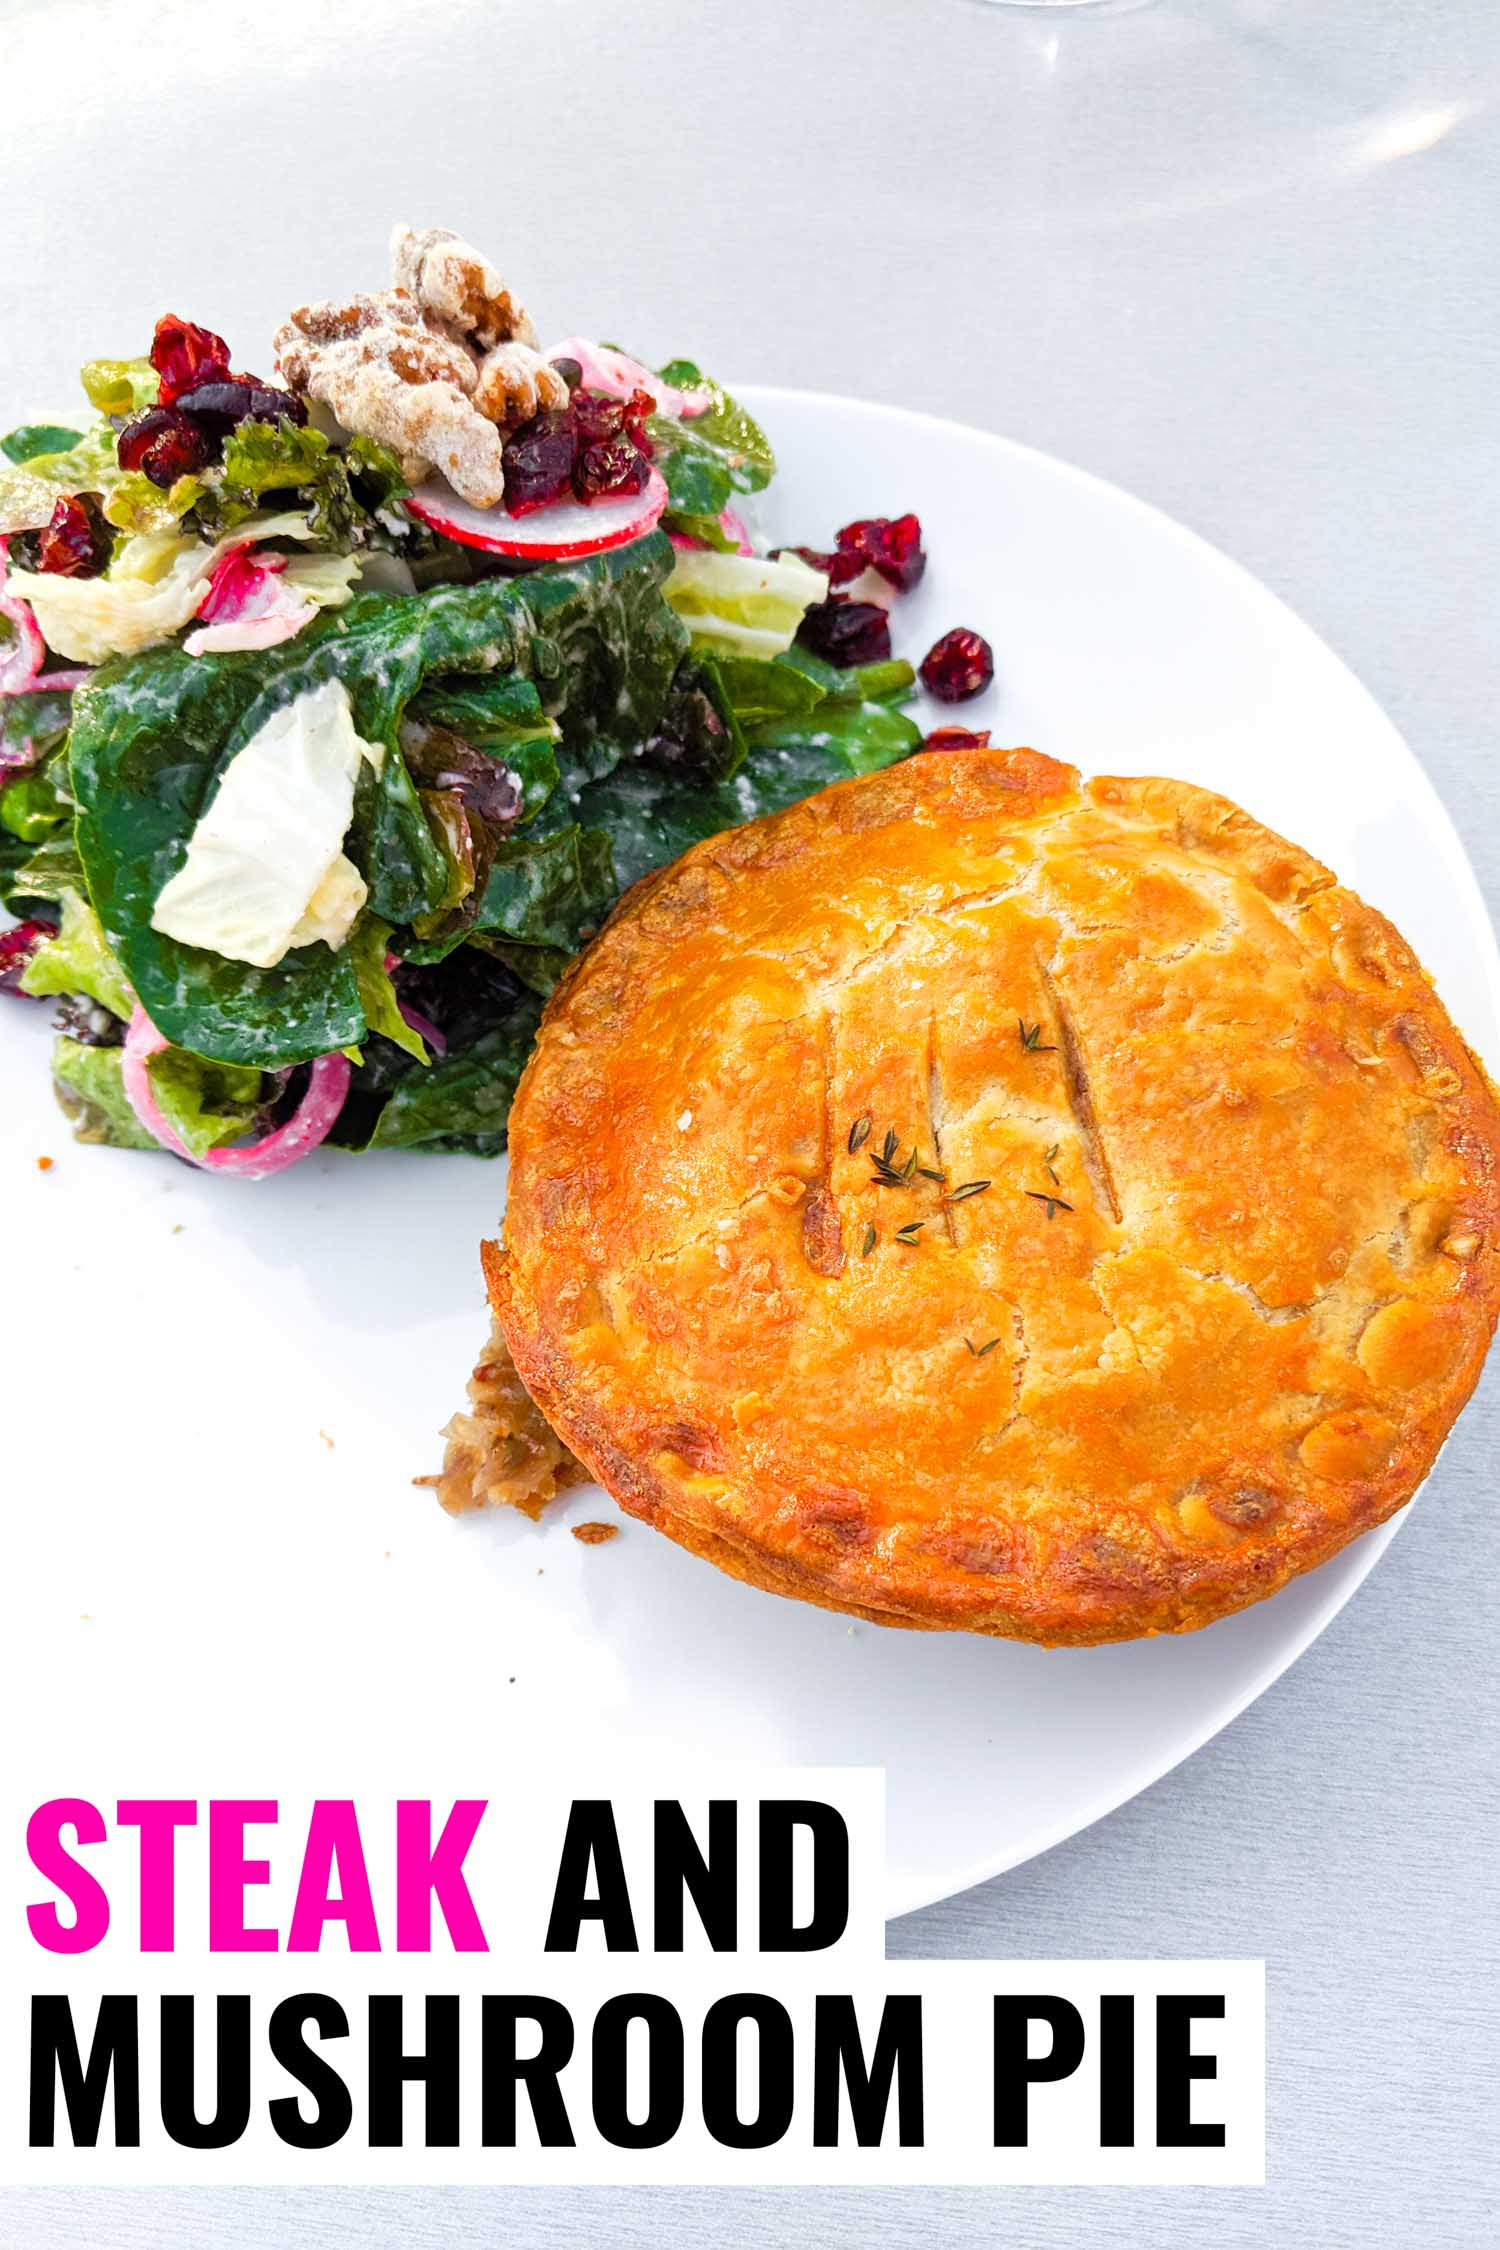 Steak and mushroom pie recipe on a plate with a green salad.